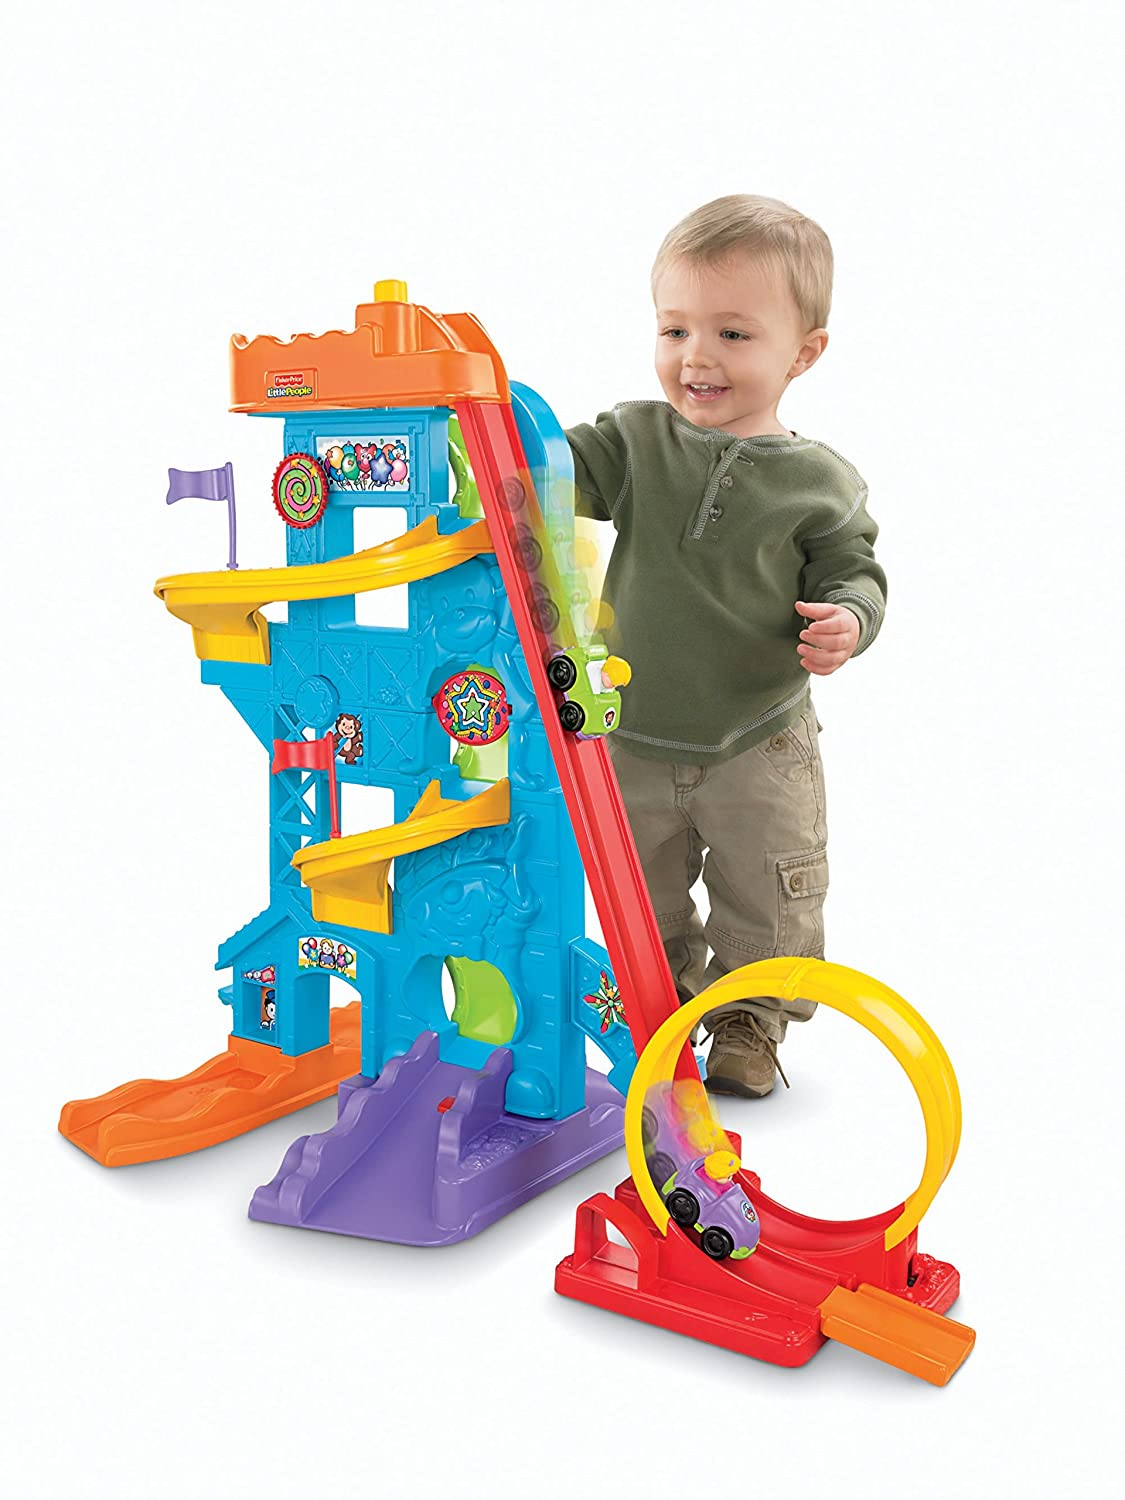 Cool Little Boy Toys : Best toys for year old boys ⋆ perfect gift store